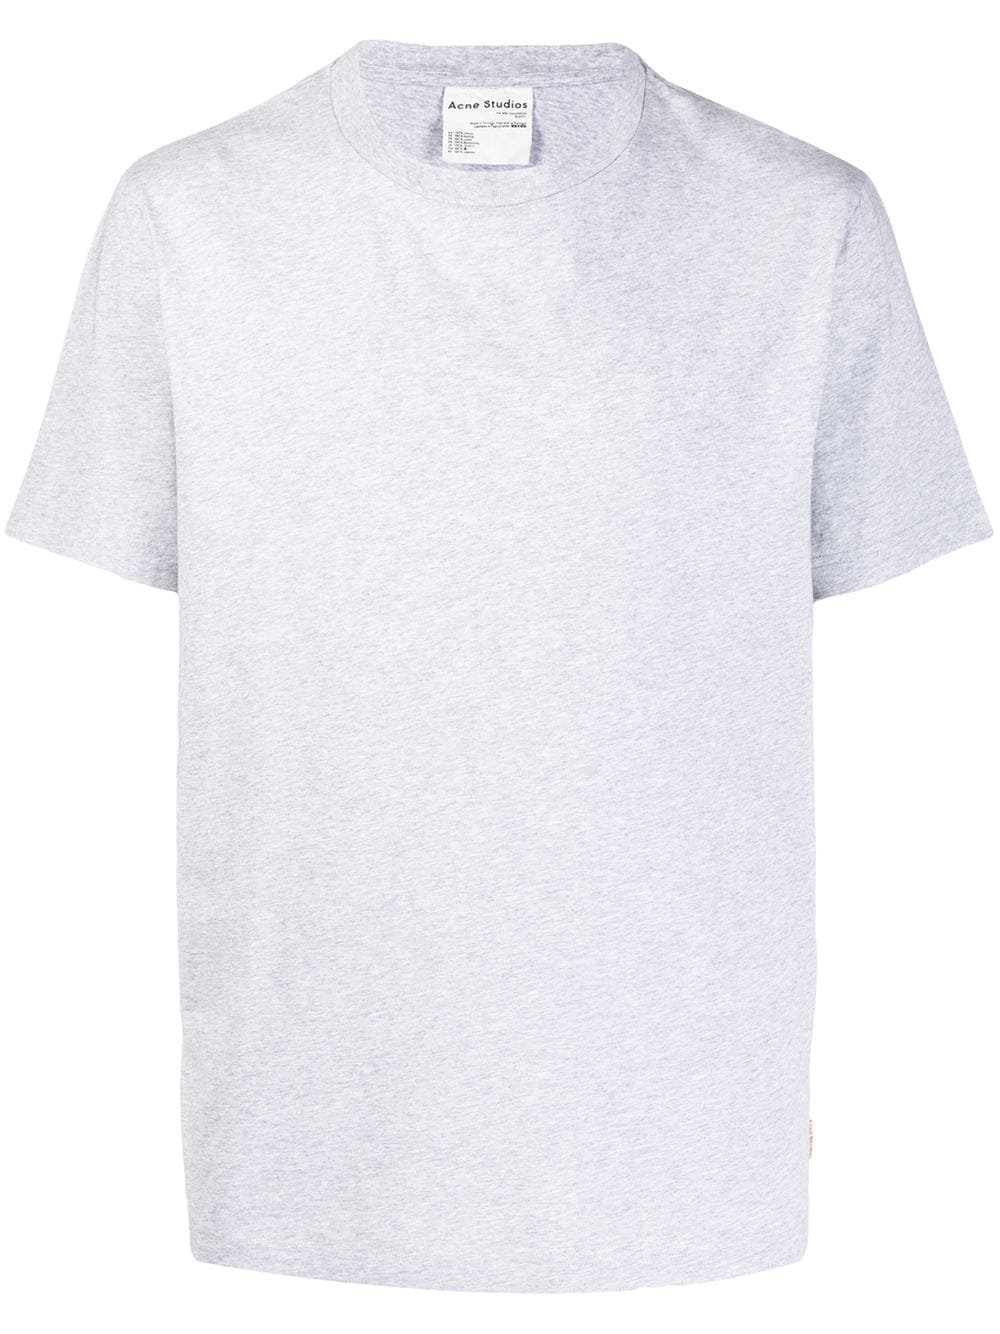 EVEREST PINK LABEL T-SHIRT